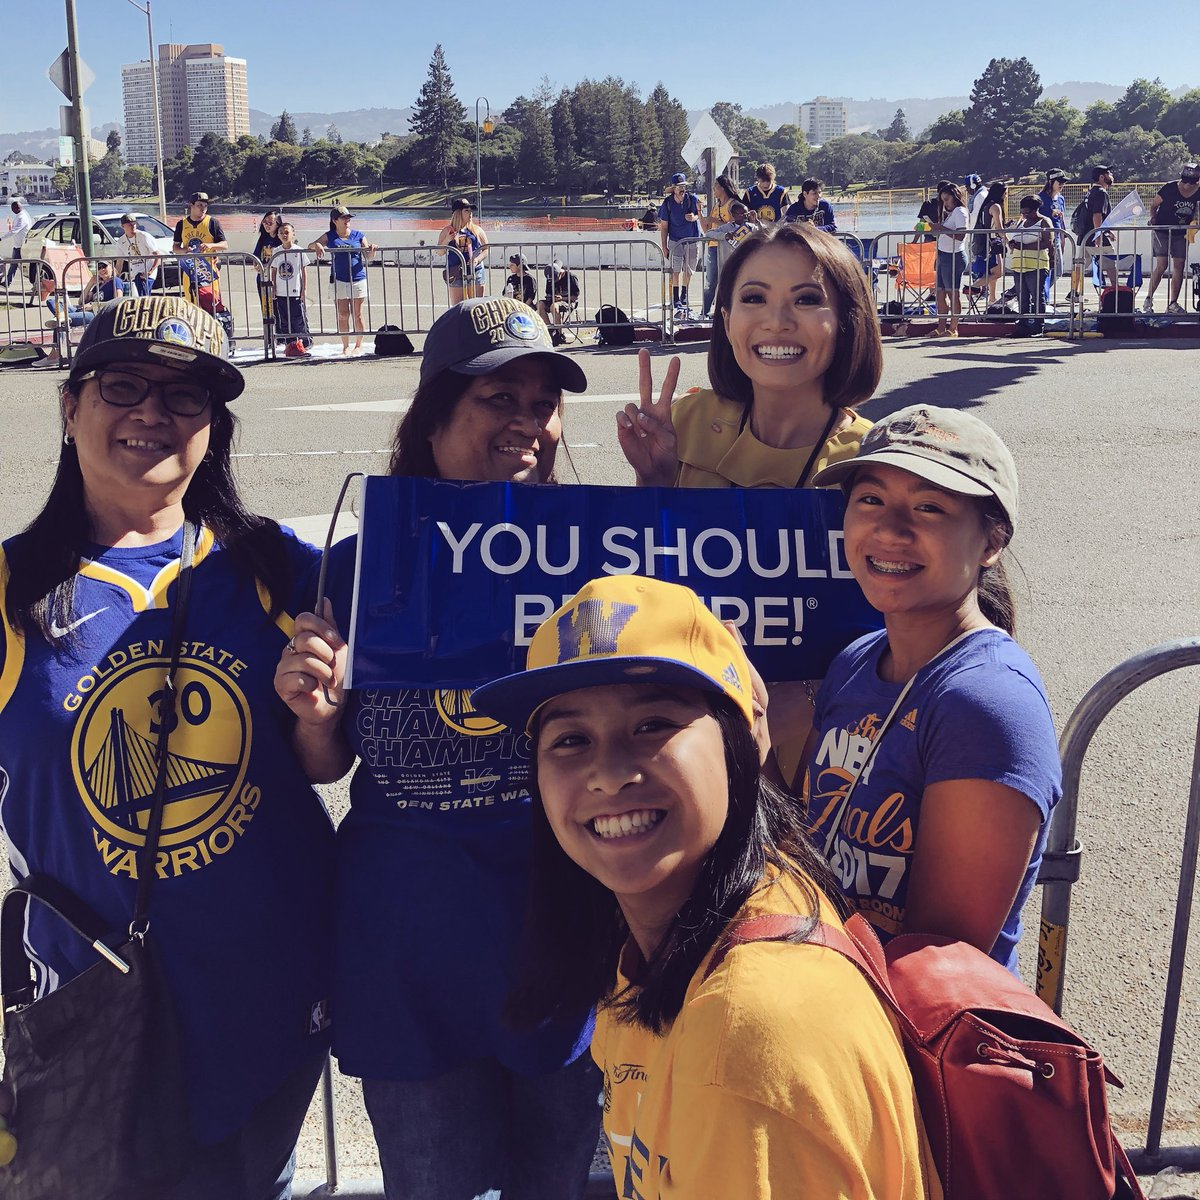 <div class='meta'><div class='origin-logo' data-origin='none'></div><span class='caption-text' data-credit='KGO-TV'>These members of Dub Nation absolutely love Klay Thompson! They're showing off their spirit at the Warriors parade on Tuesday, June 12, 2018 in Oakland, Calif.</span></div>